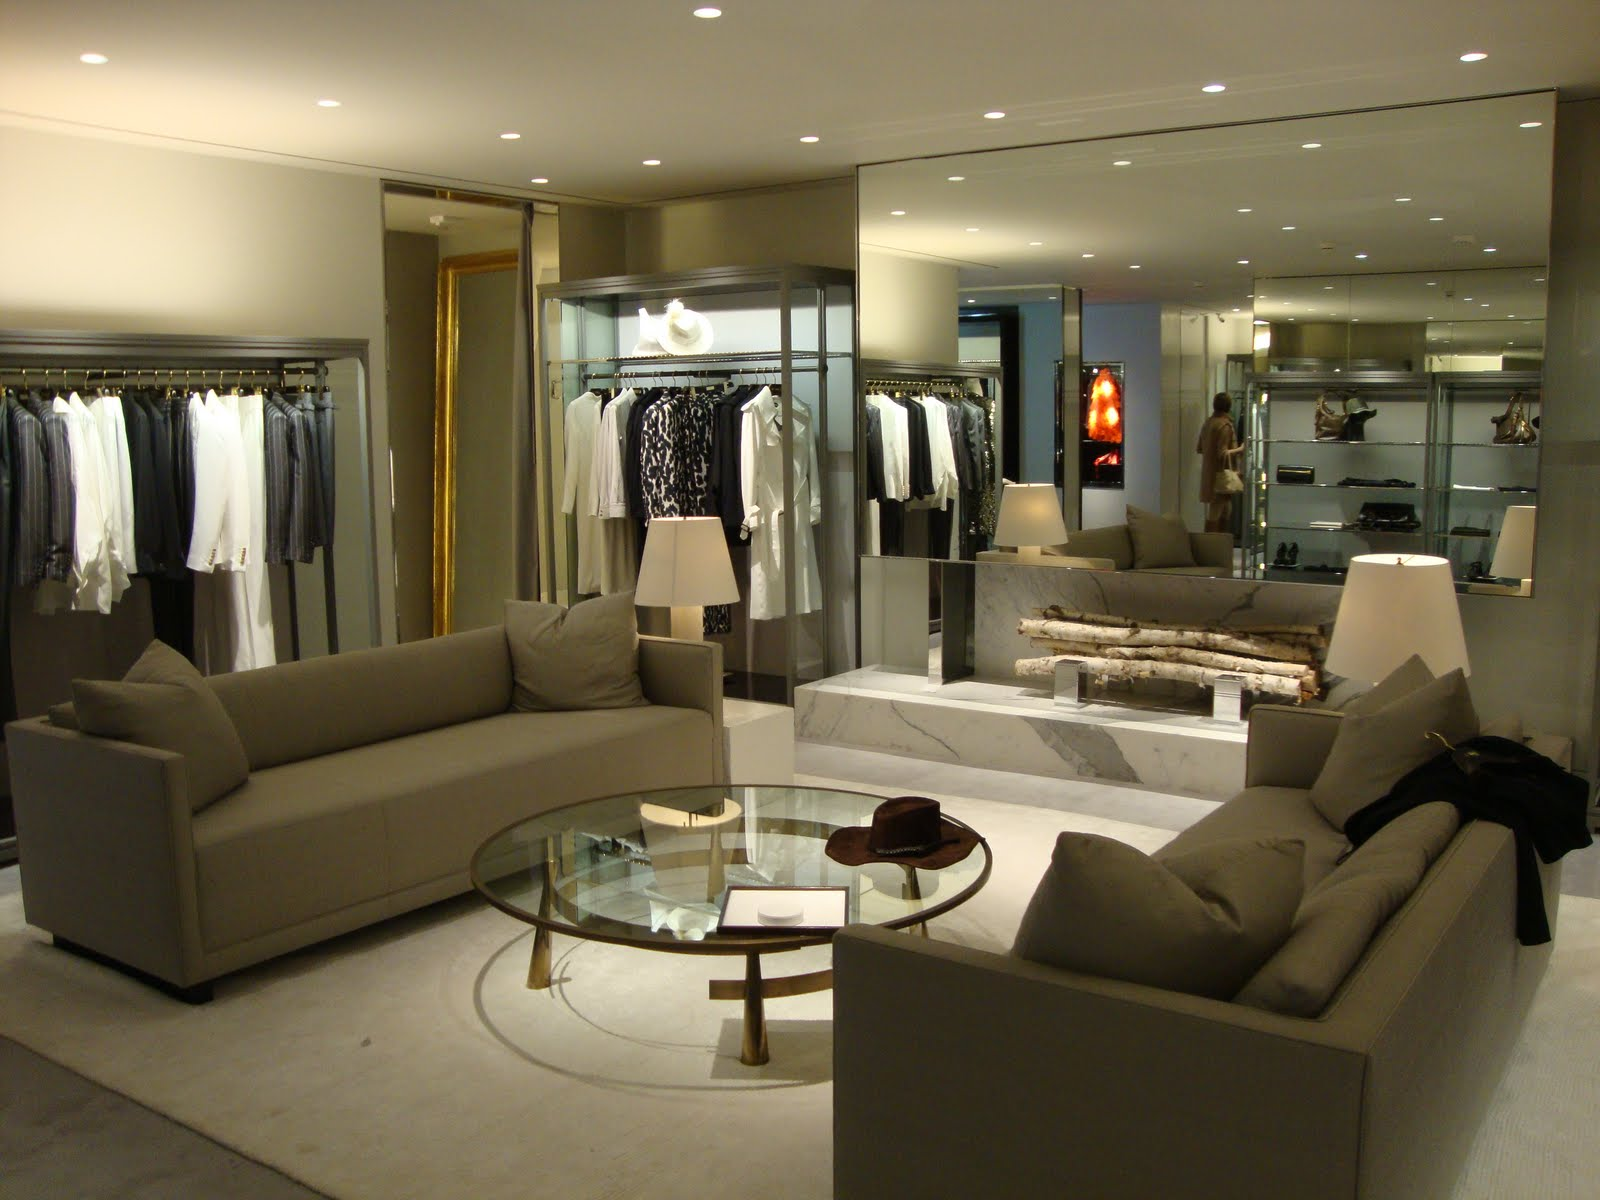 Tom Ford store with fireplace made of mirror & stone